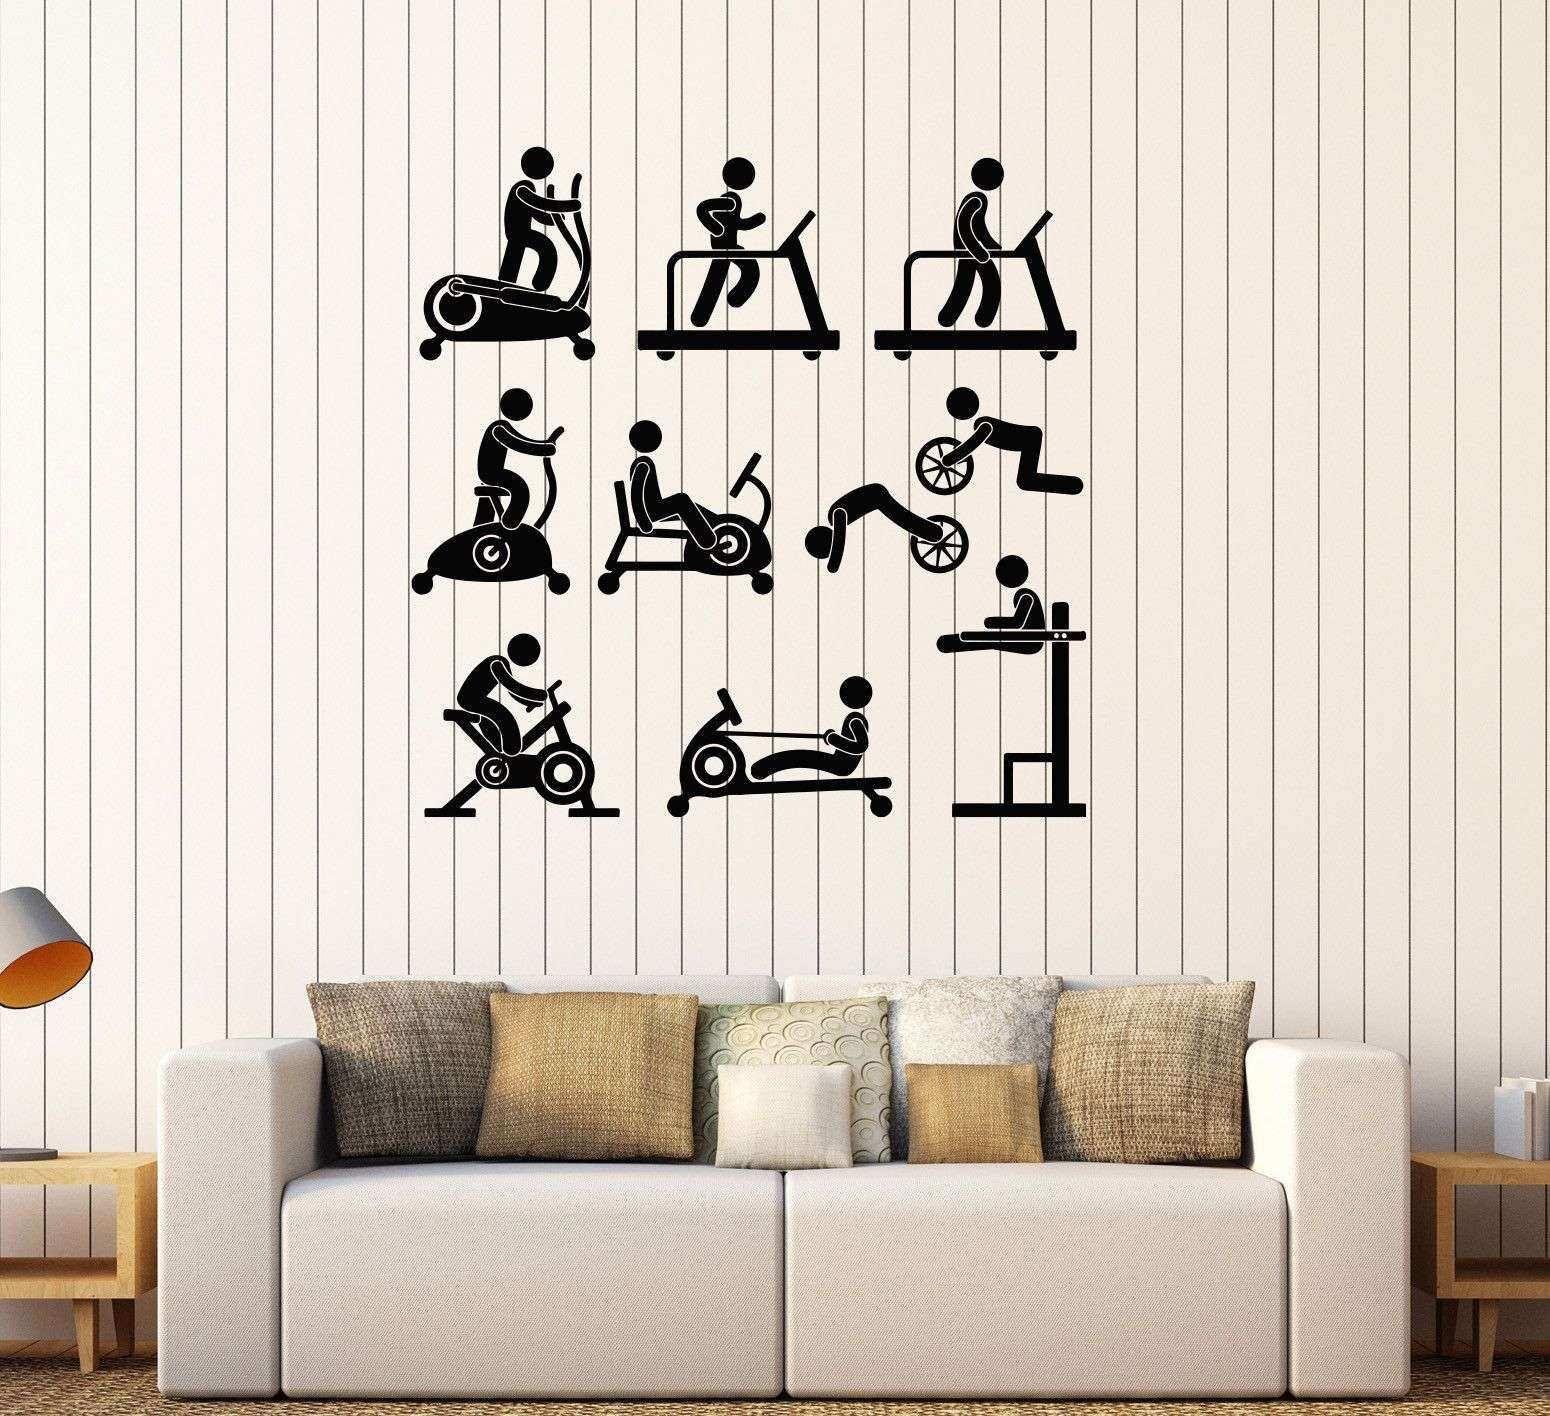 Wall Decor Stickers for Bedroom Inspirational Vinyl Wall Decal